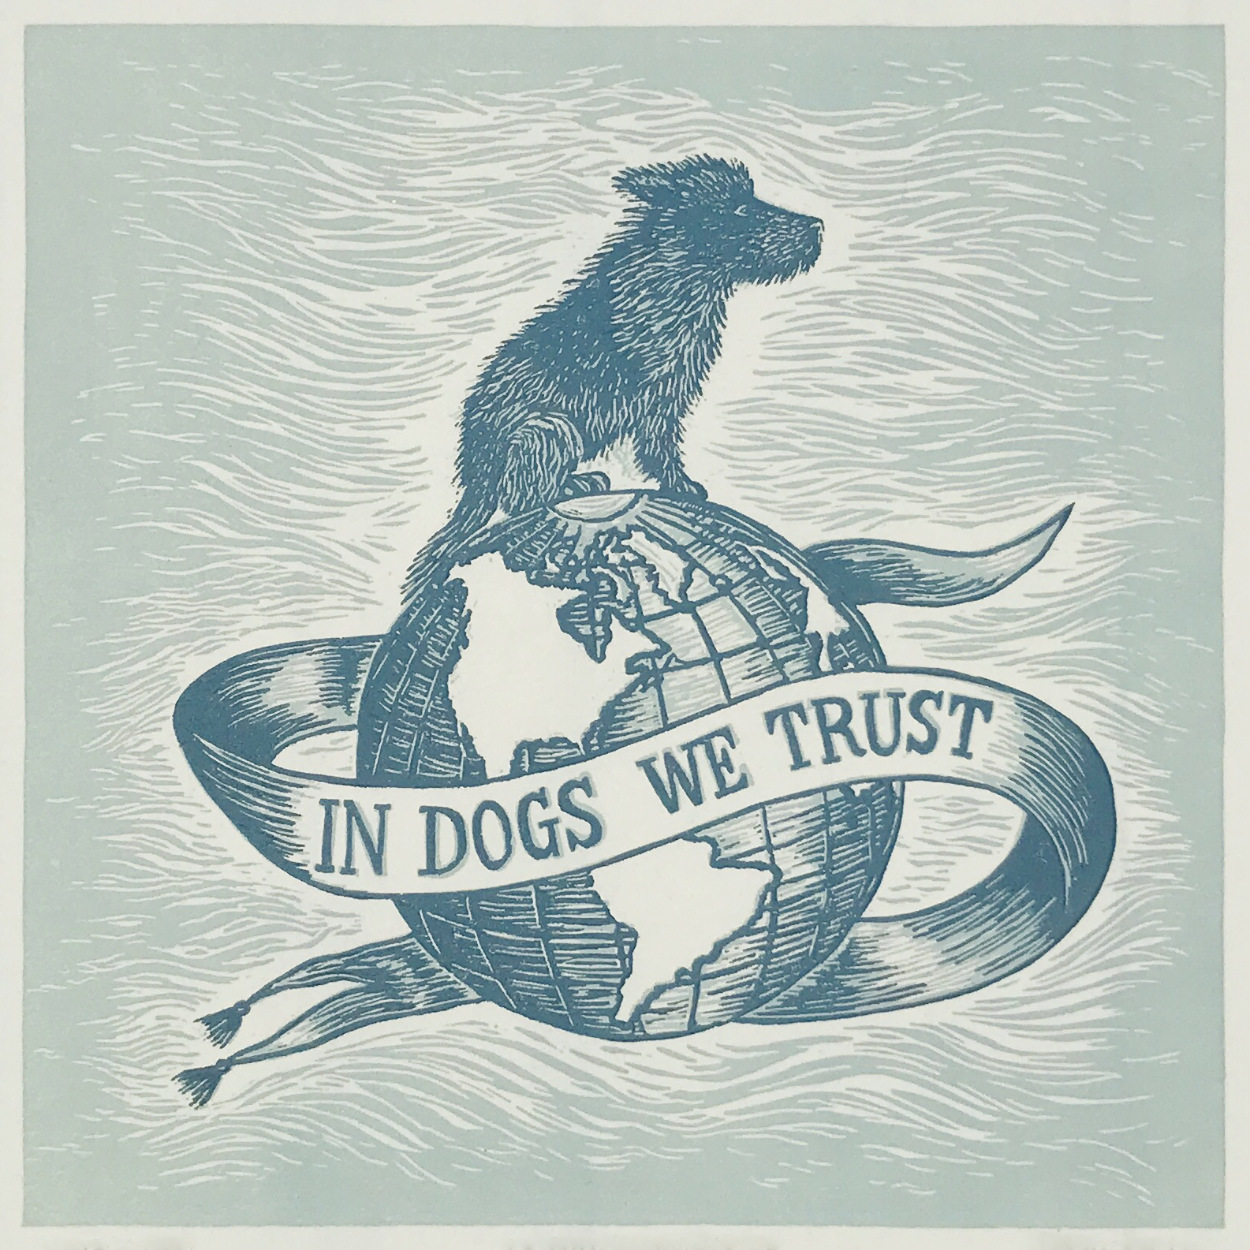 In Dogs We Trust Hand-printed Linoprint Art | The Enlightened Hound